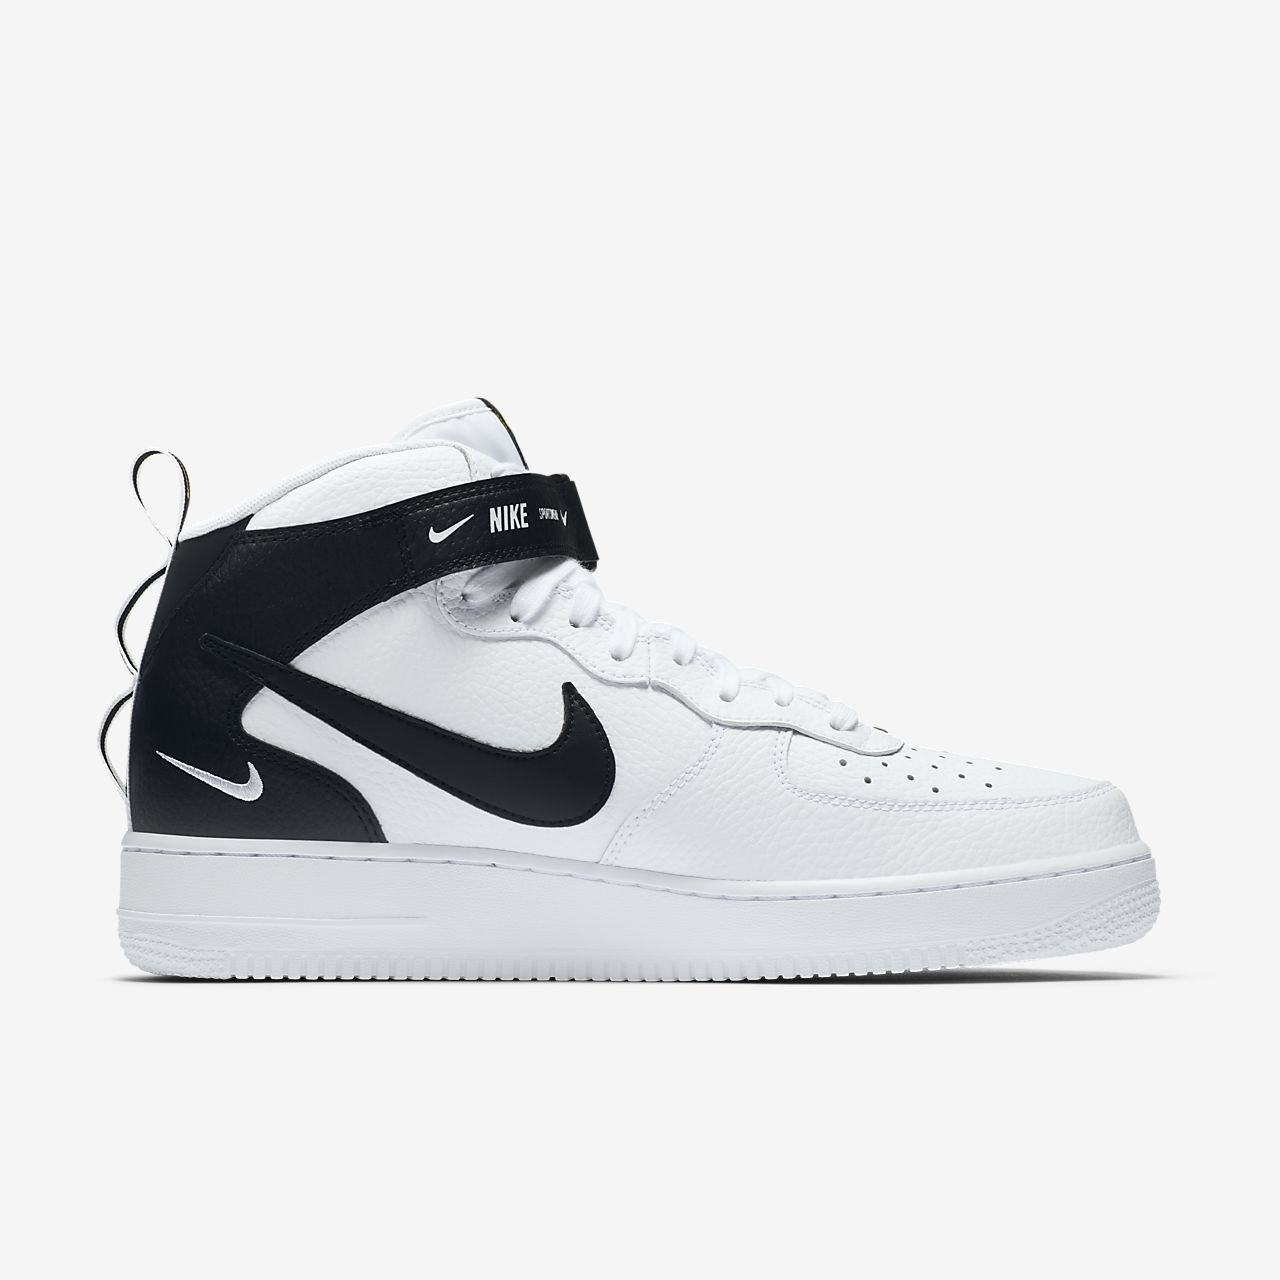 20e7b0ec Мужские кроссовки Nike Air Force 1 07 Mid LV8. Nike.com RU